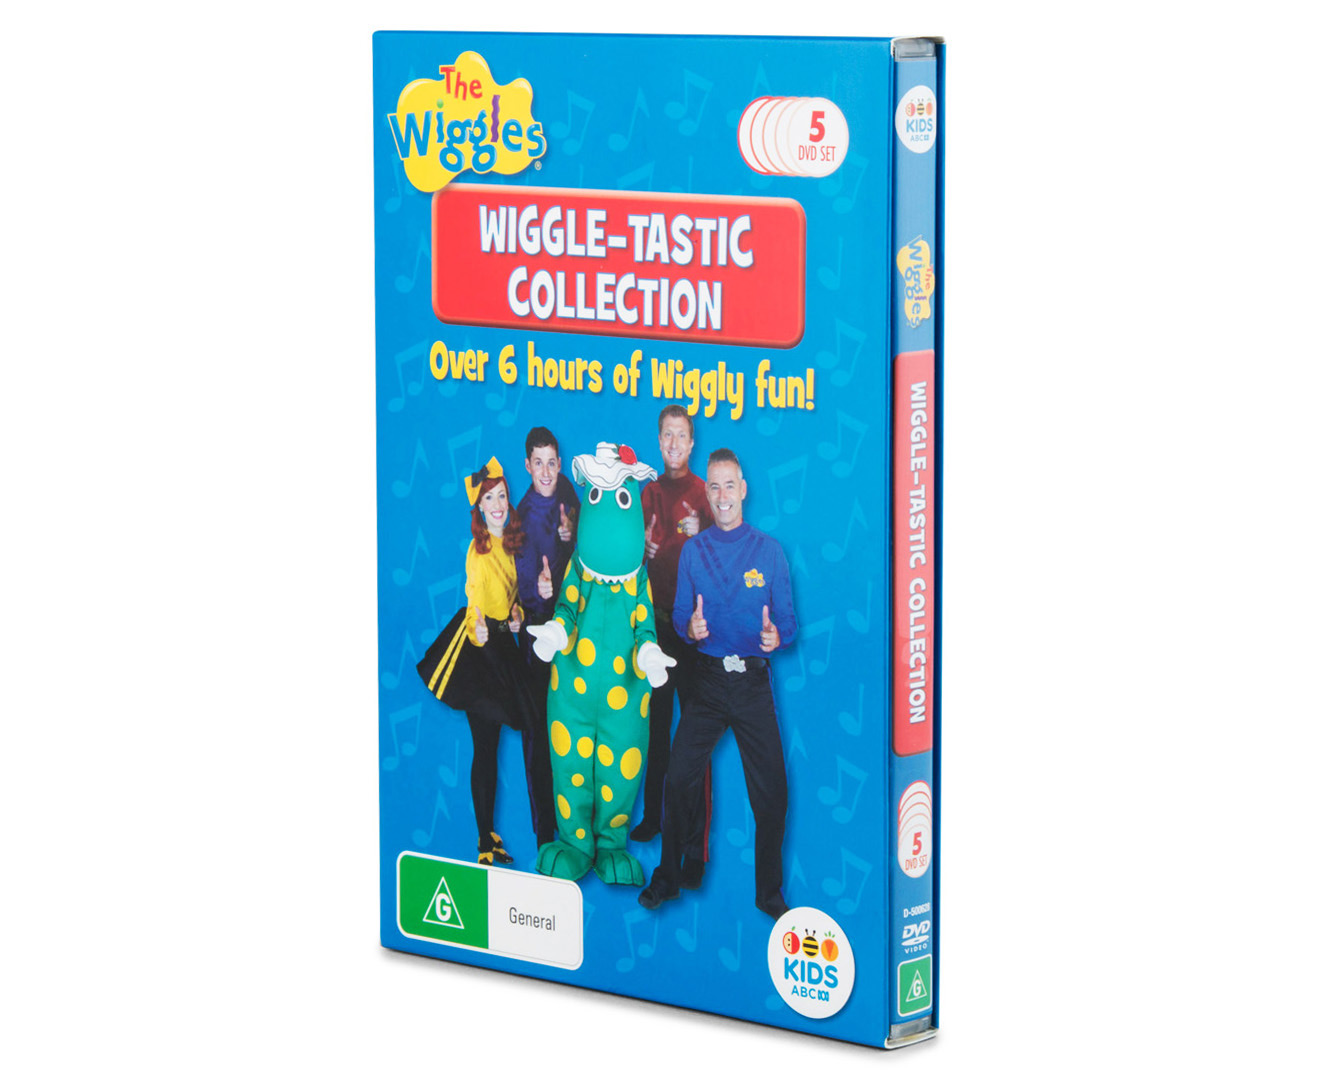 The Wiggles Wiggle Tastic Collection 5 Dvd Set Mumgo Com Au